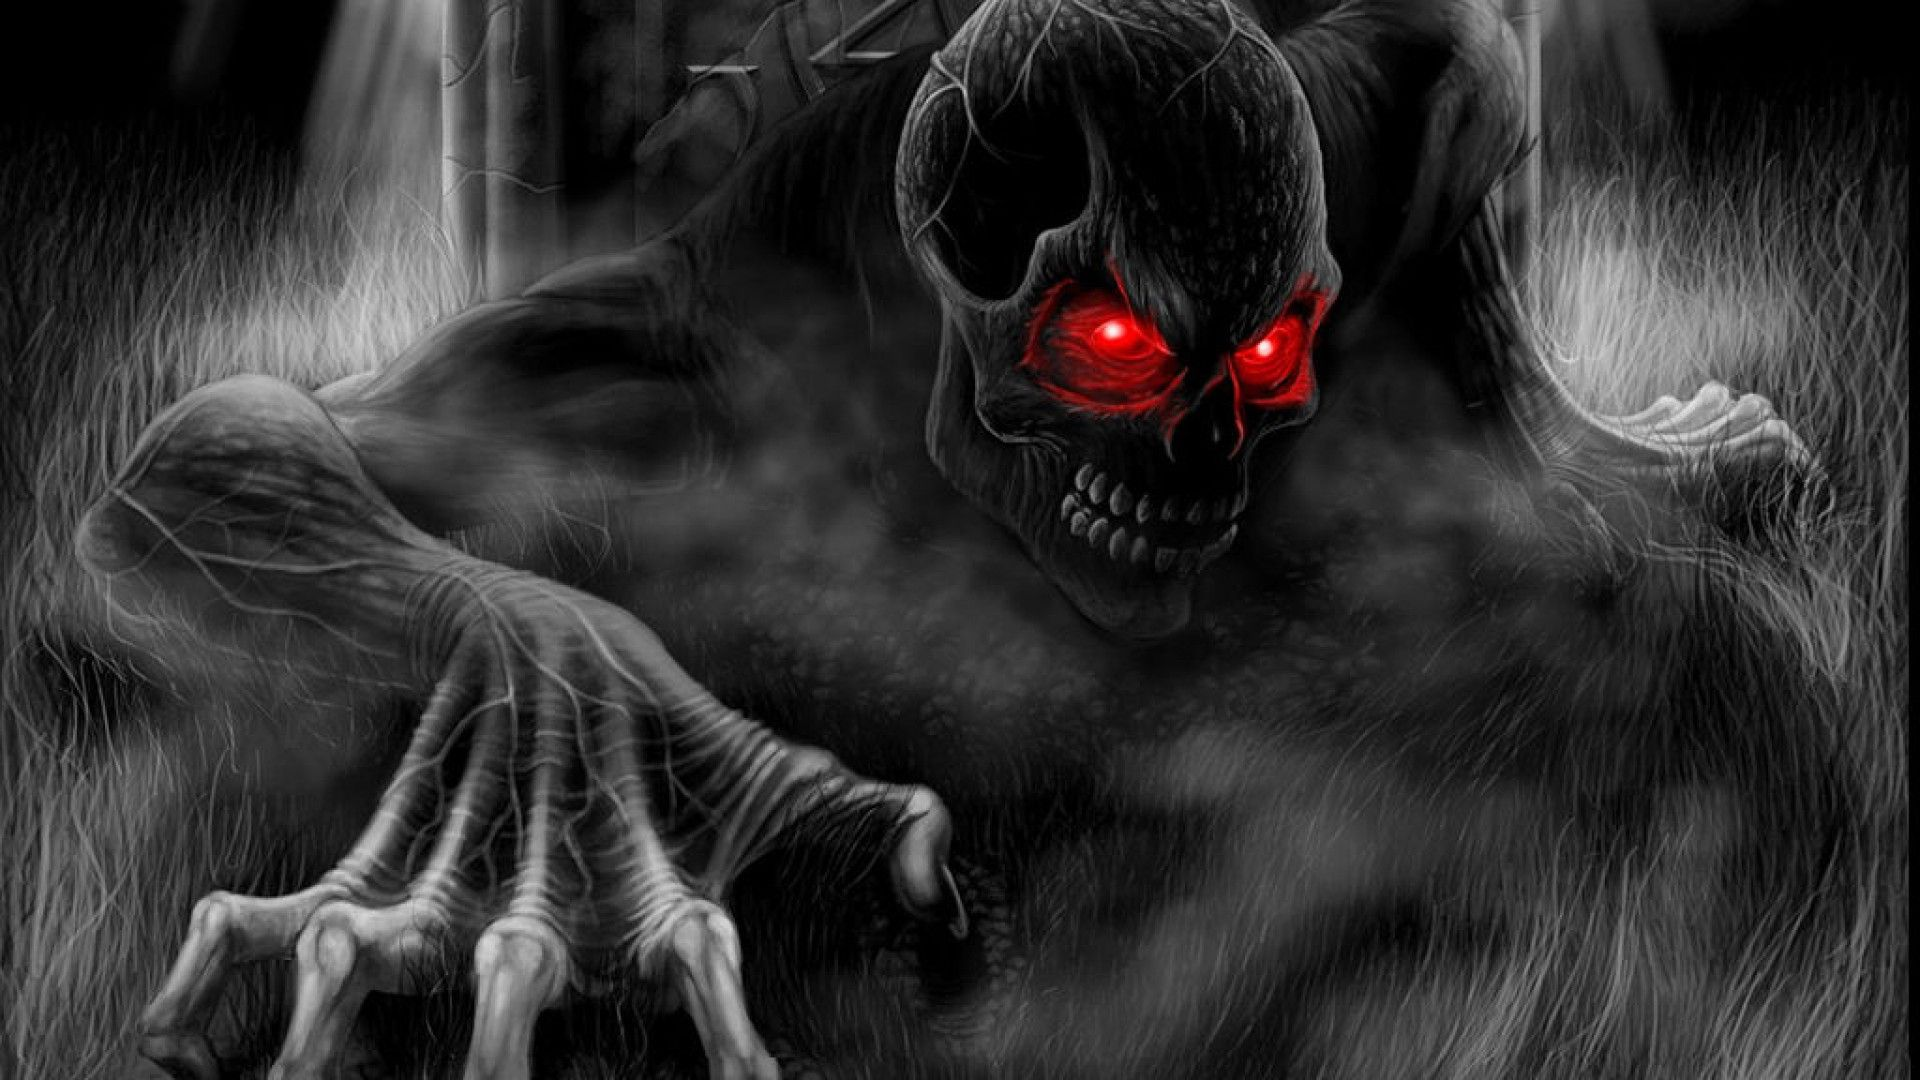 Horror HD Wallpapers : Find best latest Horror HD Wallpapers for your PC desktop background ...